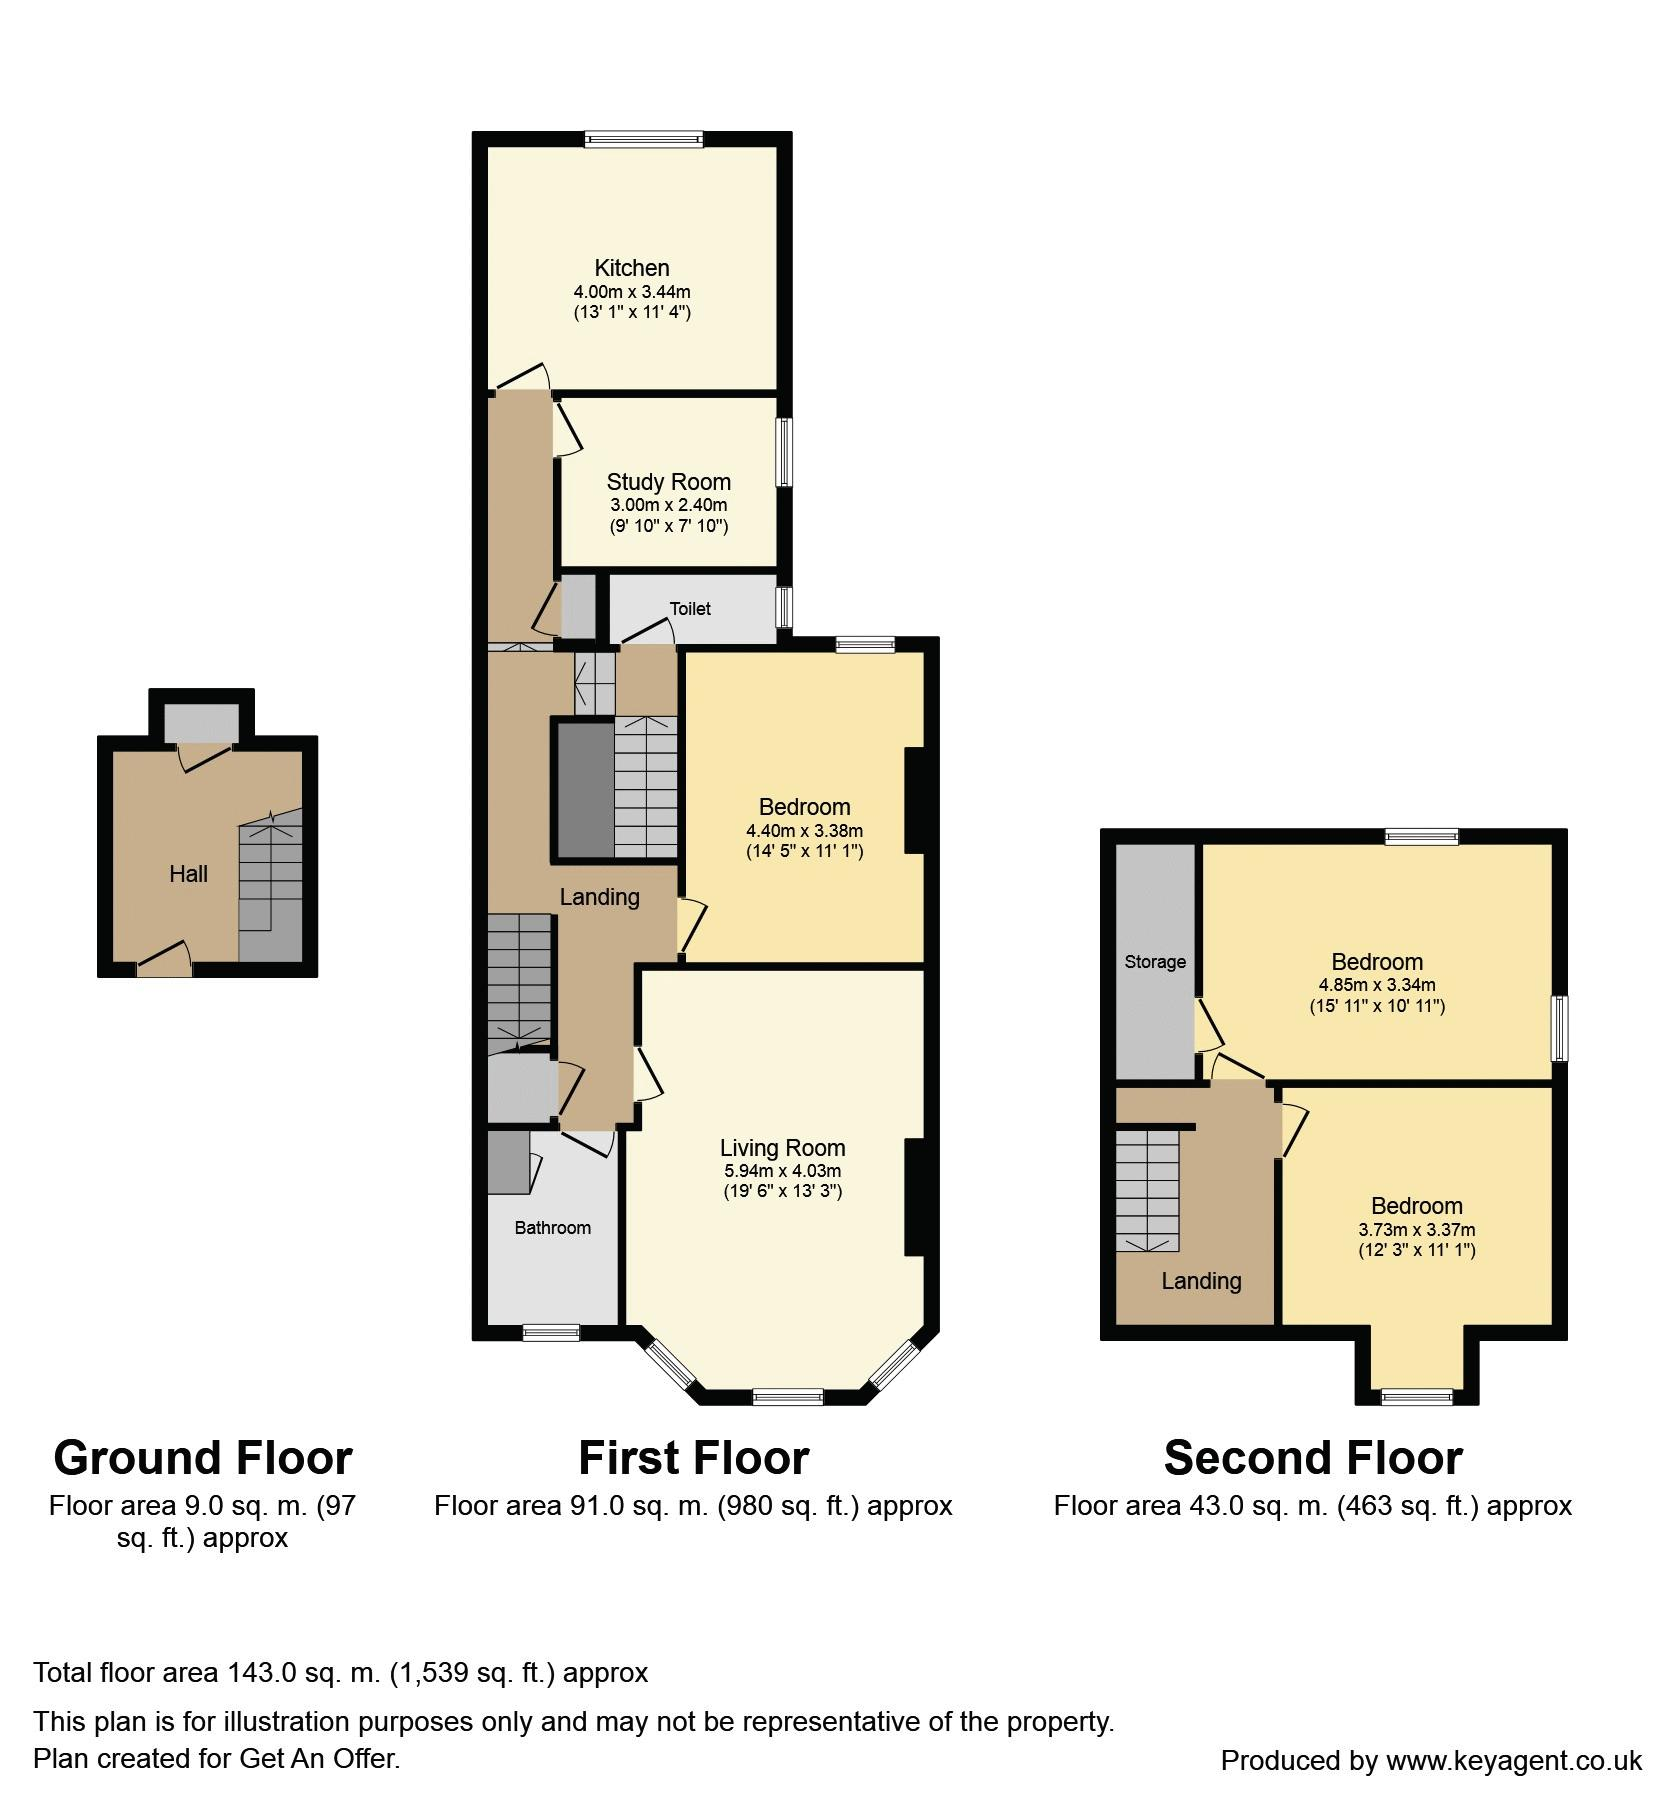 4 bedroom maisonette for sale 45838448 primelocation for How much is a bedroom worth in an appraisal